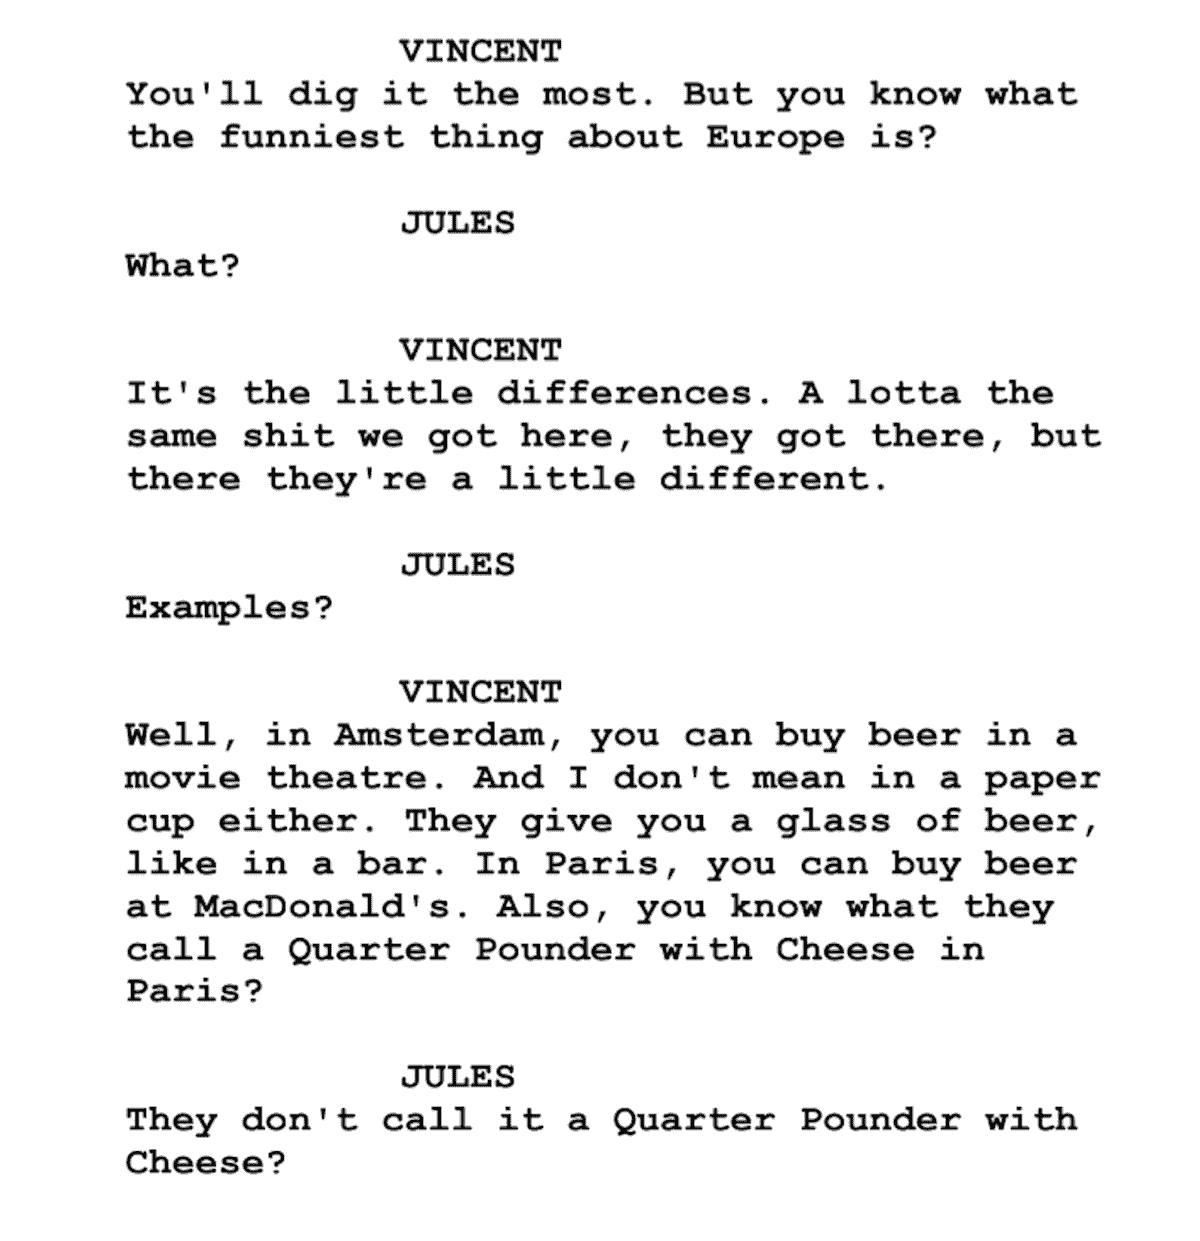 Screenplay Examples - Pulp Fiction Script - Screenplay Snippet 11 - Quarter Pounder with cheese